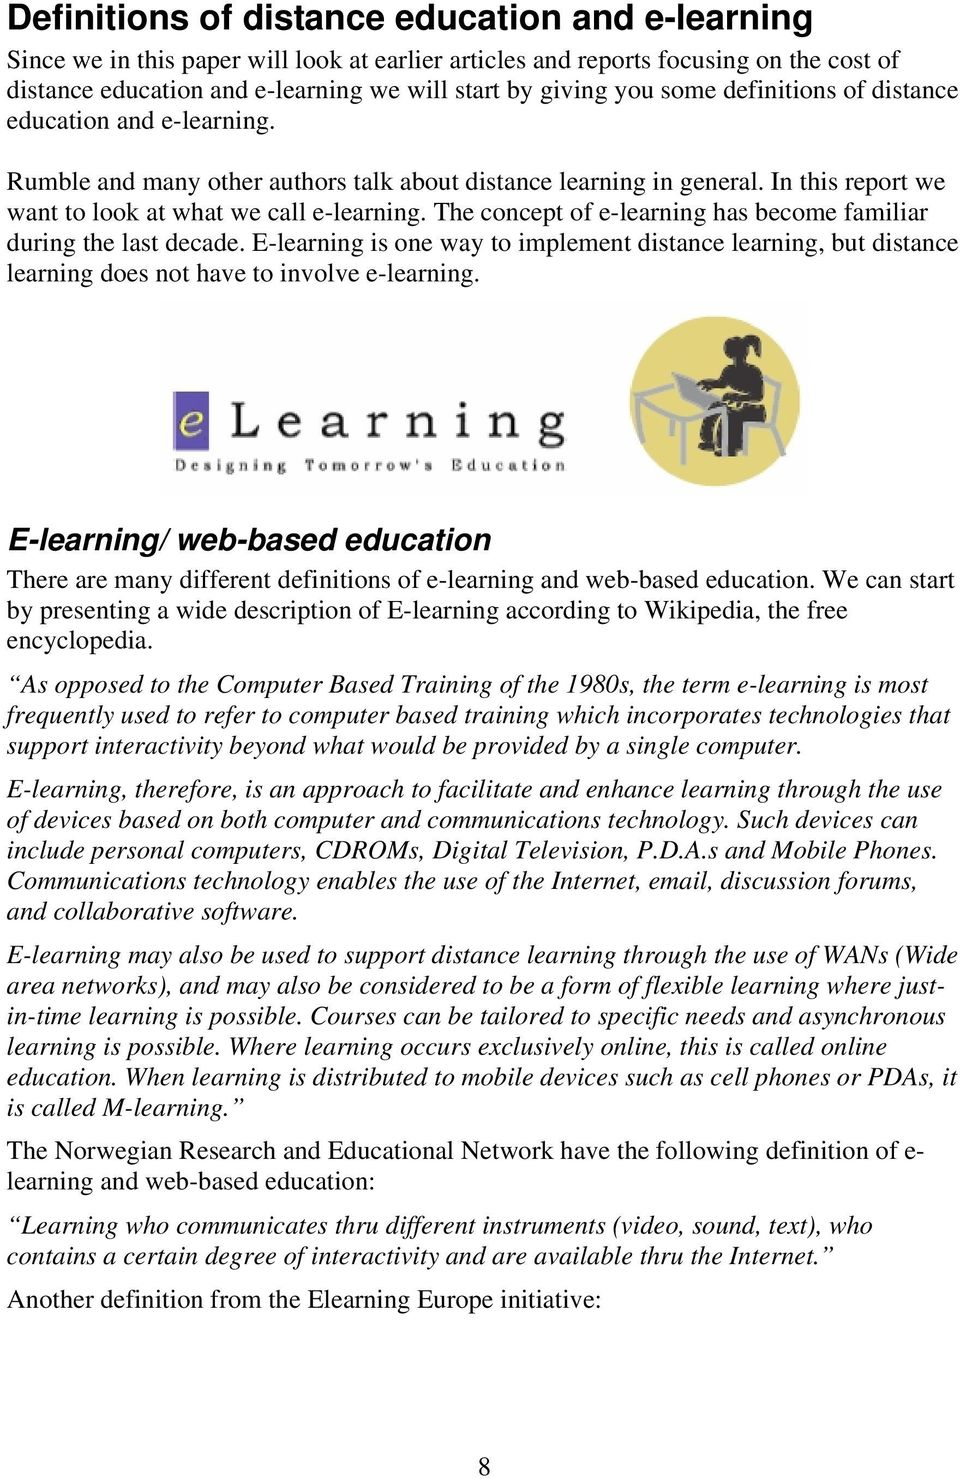 The concept of e-learning has become familiar during the last decade. E-learning is one way to implement distance learning, but distance learning does not have to involve e-learning.